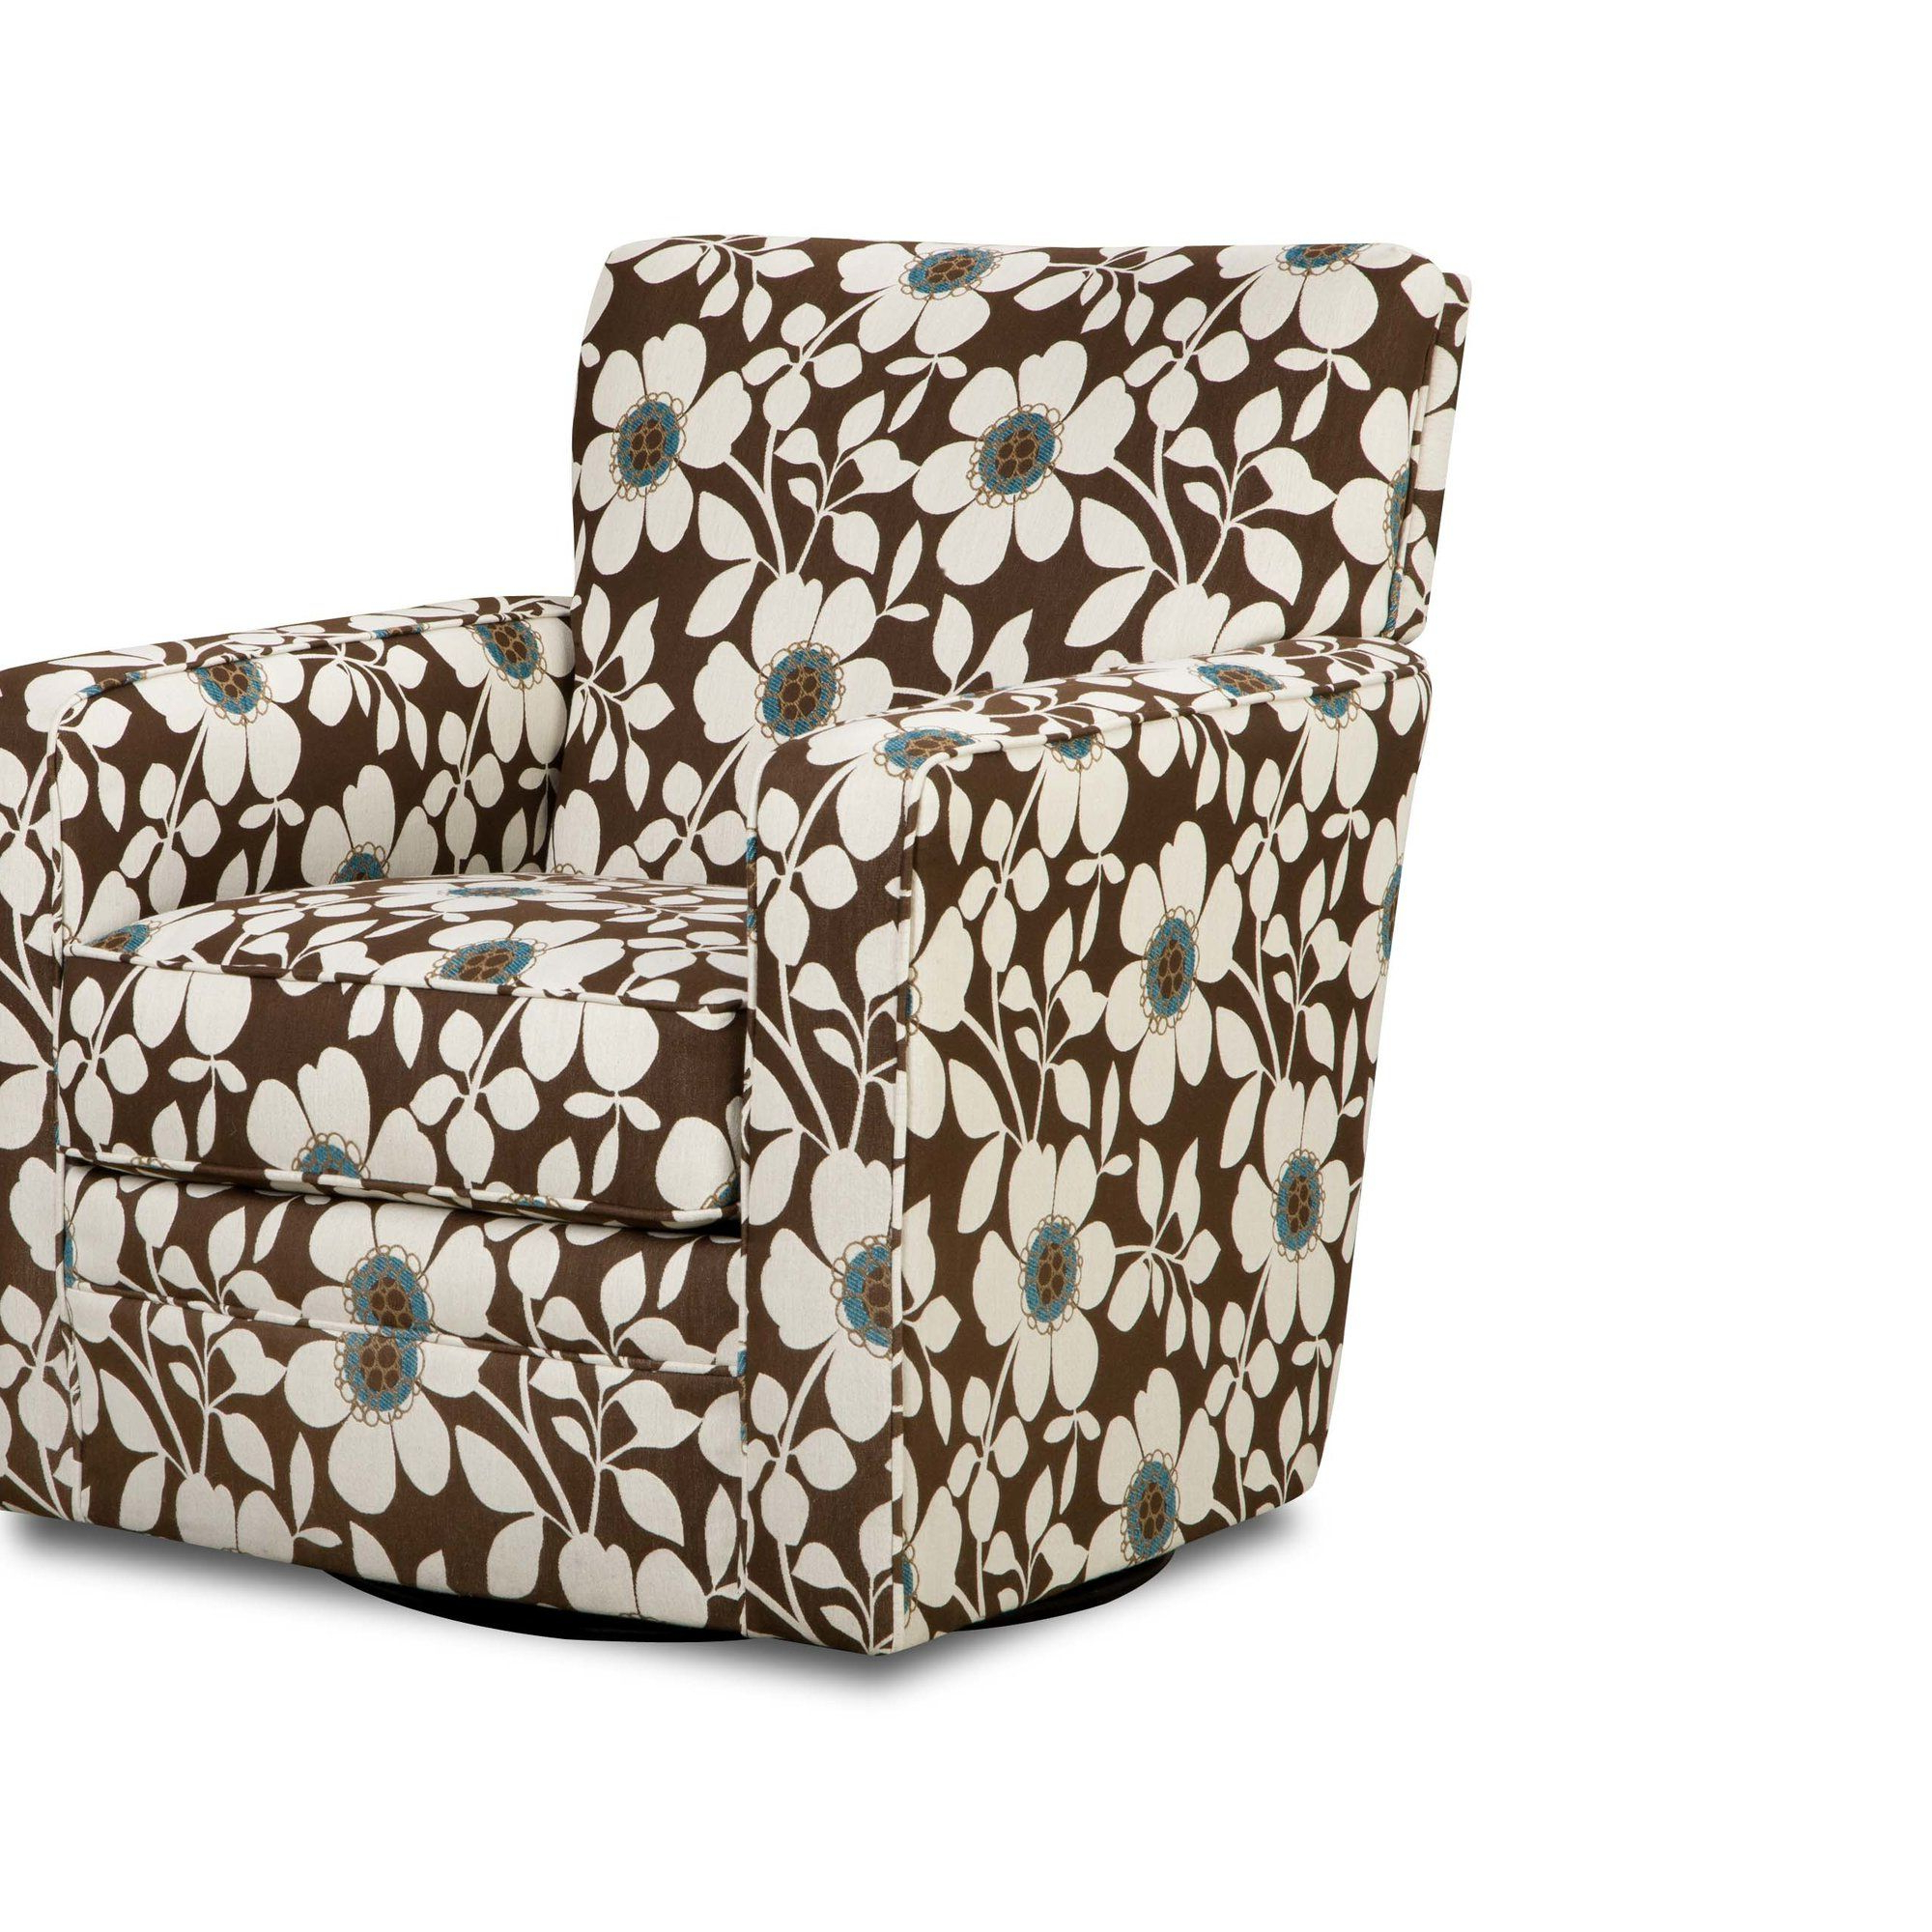 Katrina Beige Swivel Glider Chairs Intended For Preferred Simmons Upholstery Katrina Swivel Glider (View 5 of 20)